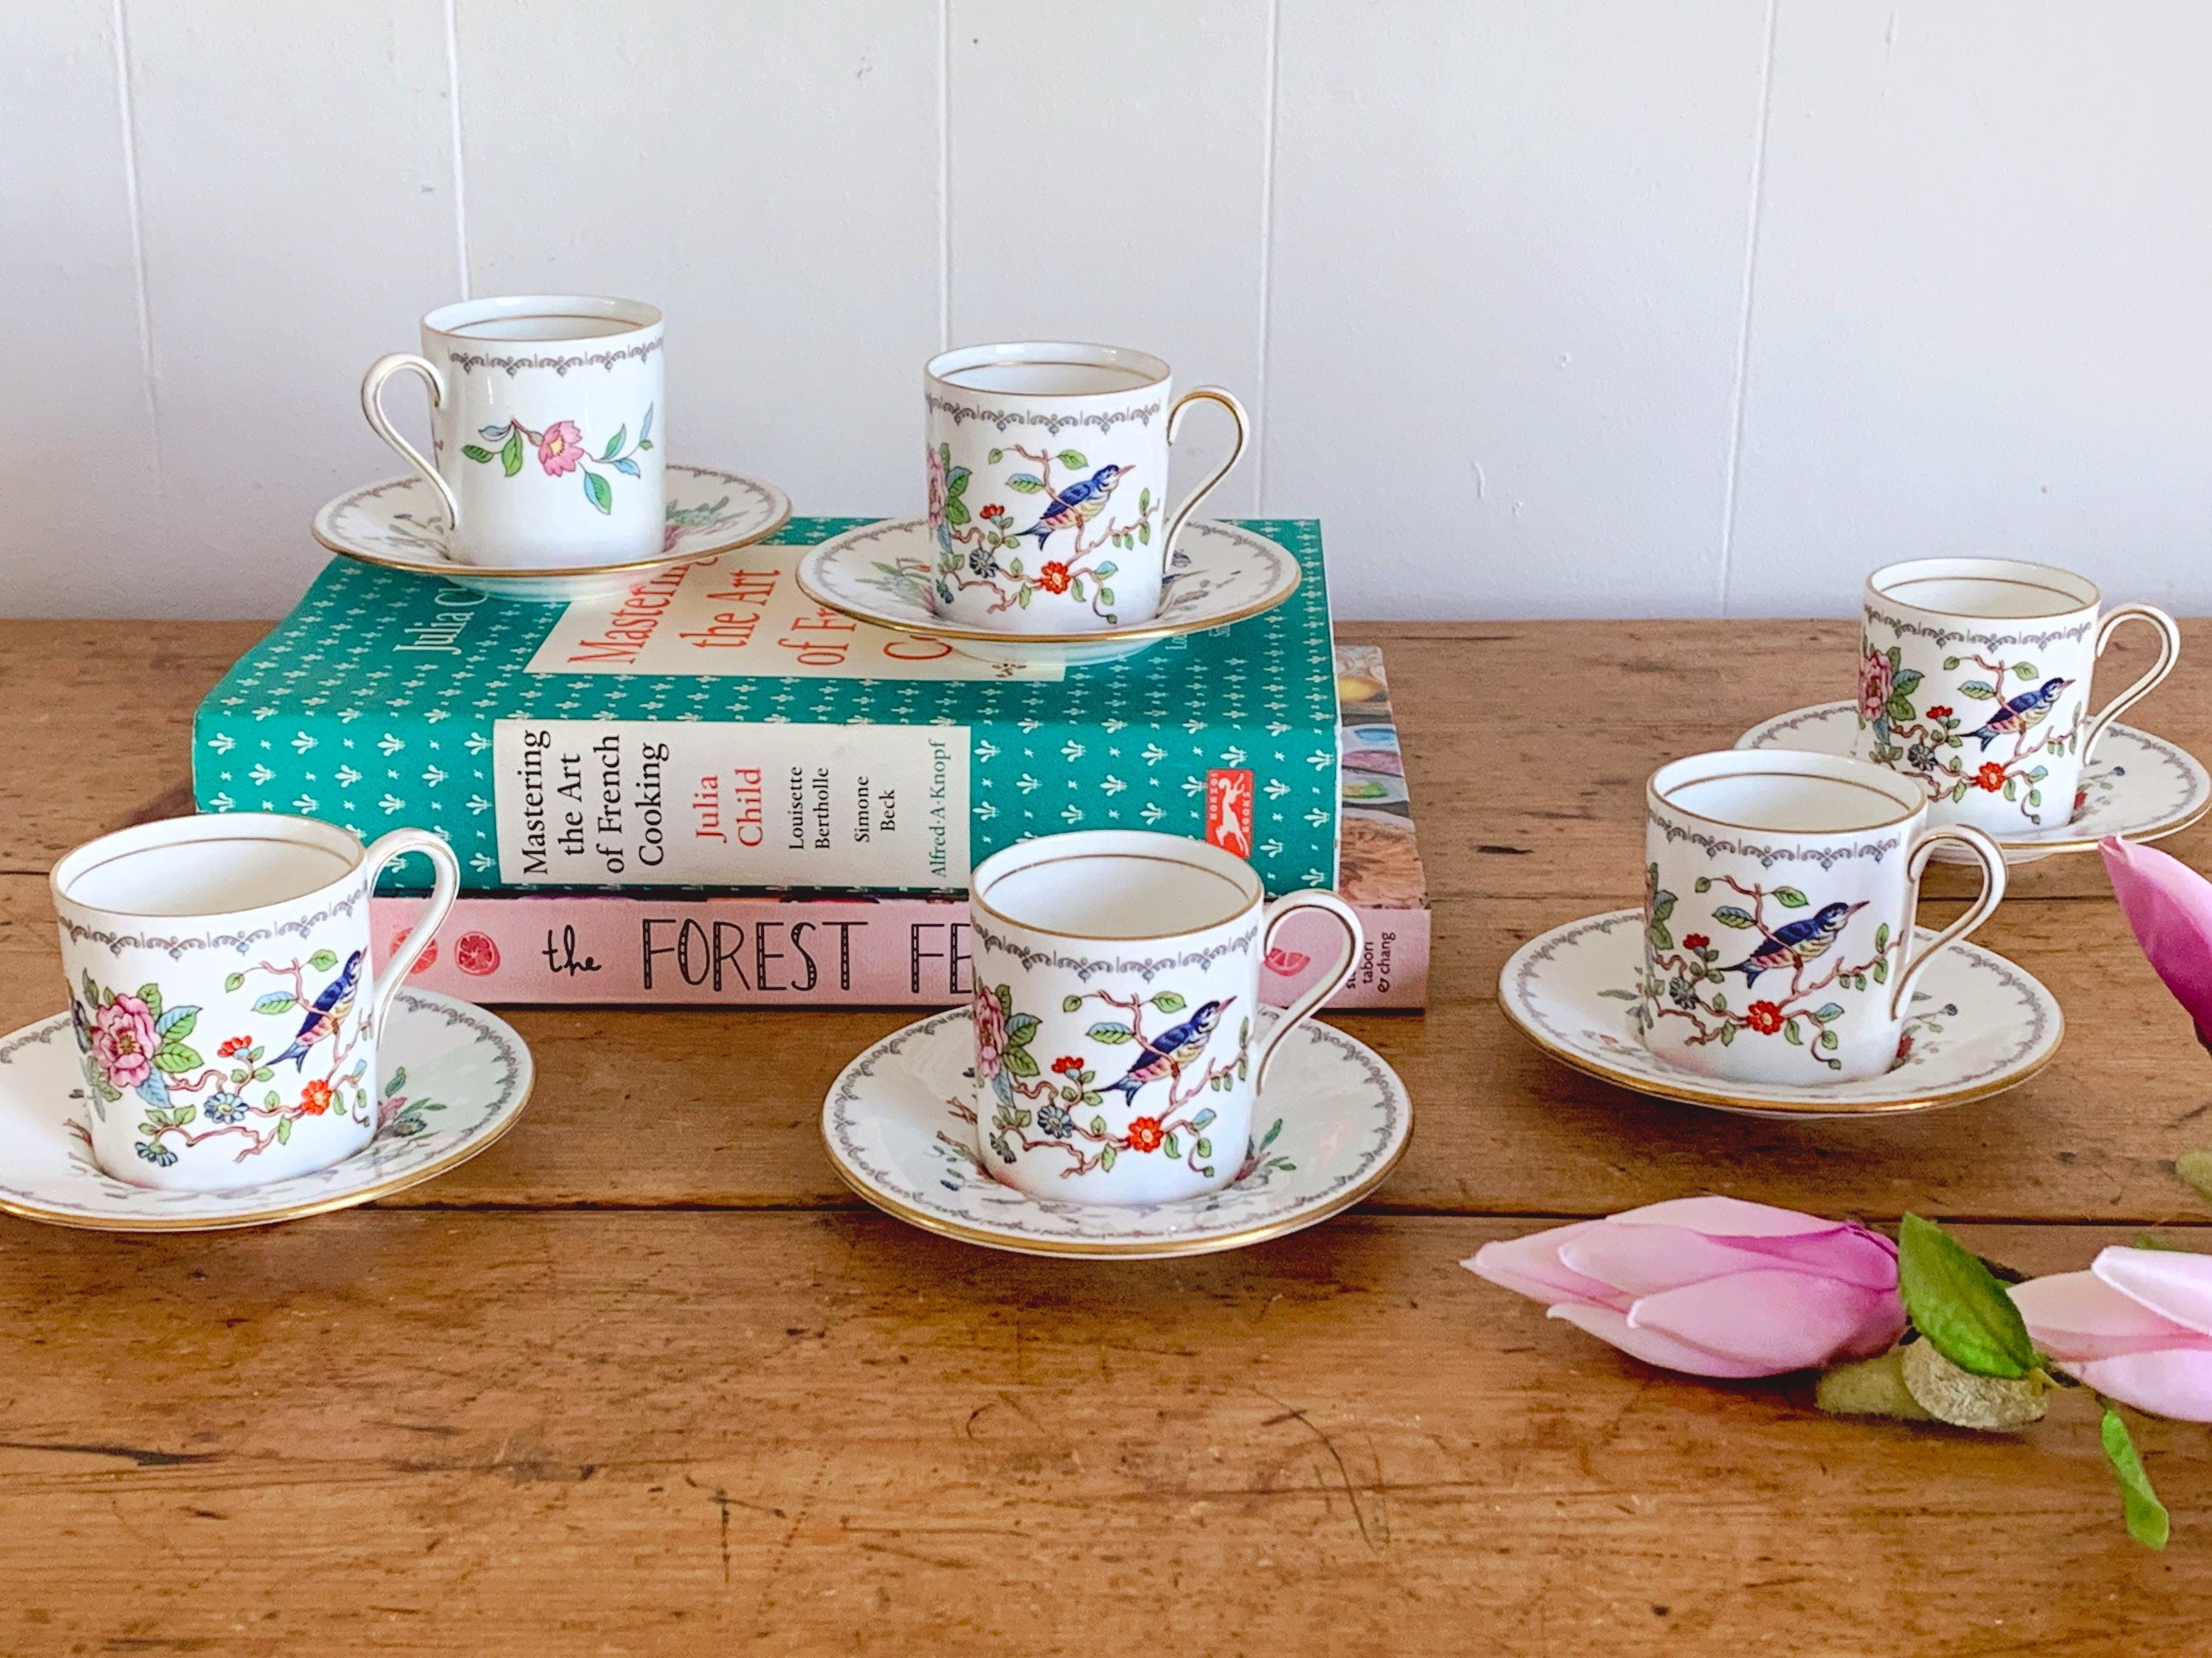 Vintage Aynsley Pembroke Demitasse Cup and Saucer Set | Bone China Espresso Cups with Gold Trim | 2, 4 or 6 sets